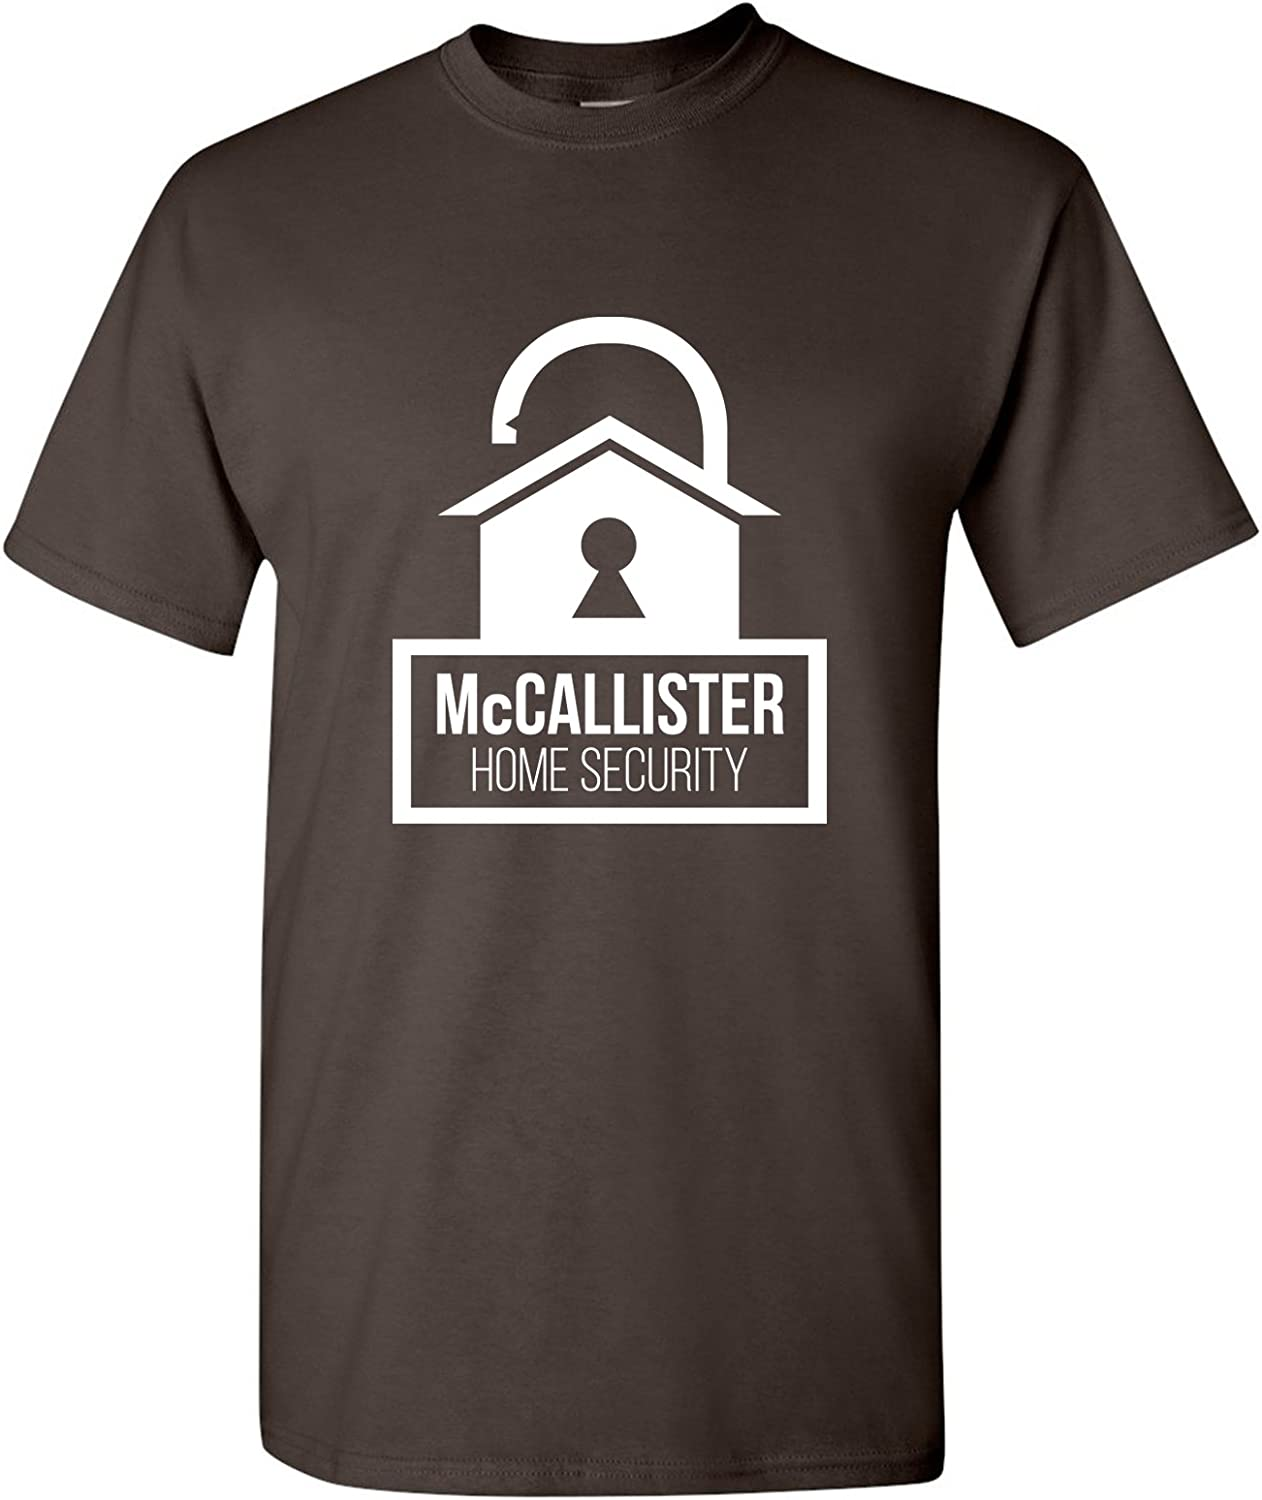 UGP Campus Apparel McCallisters Home Security - Funny Parody Christmas Movie Humor T Shirt